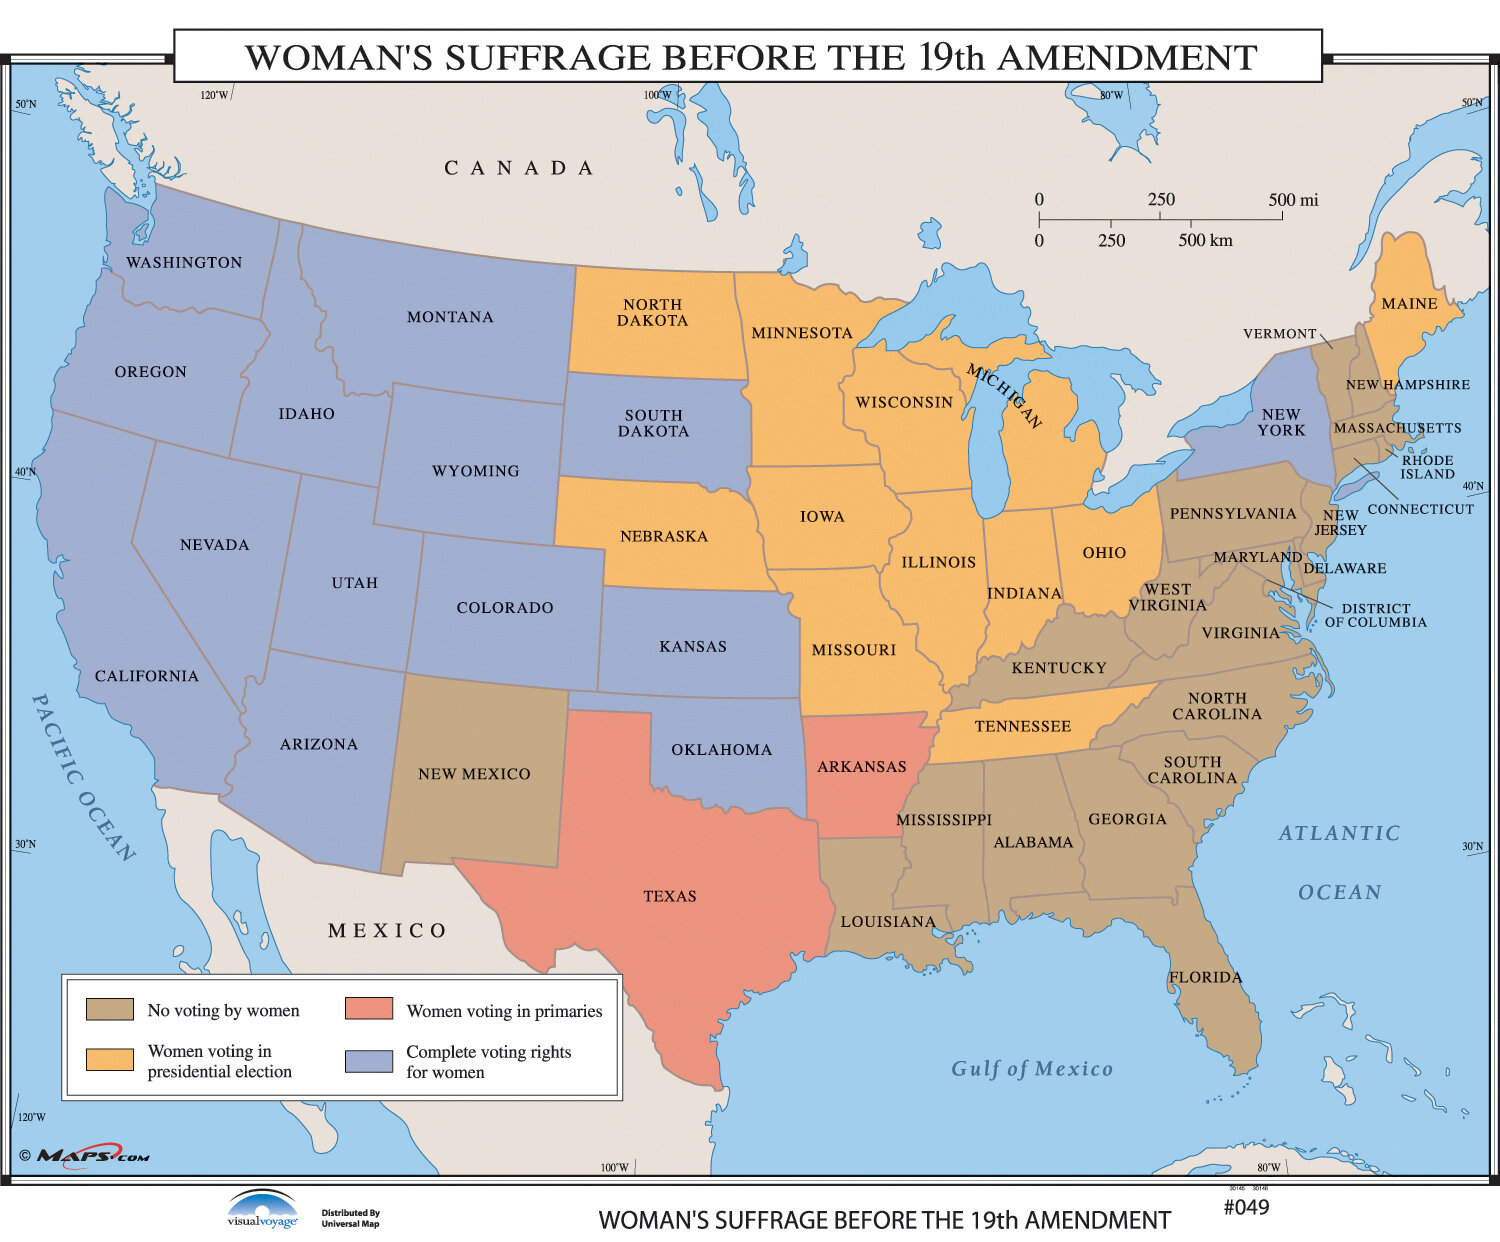 U.S. History Wall Maps - Woman\'s Suffrage Before 19th Ammendment